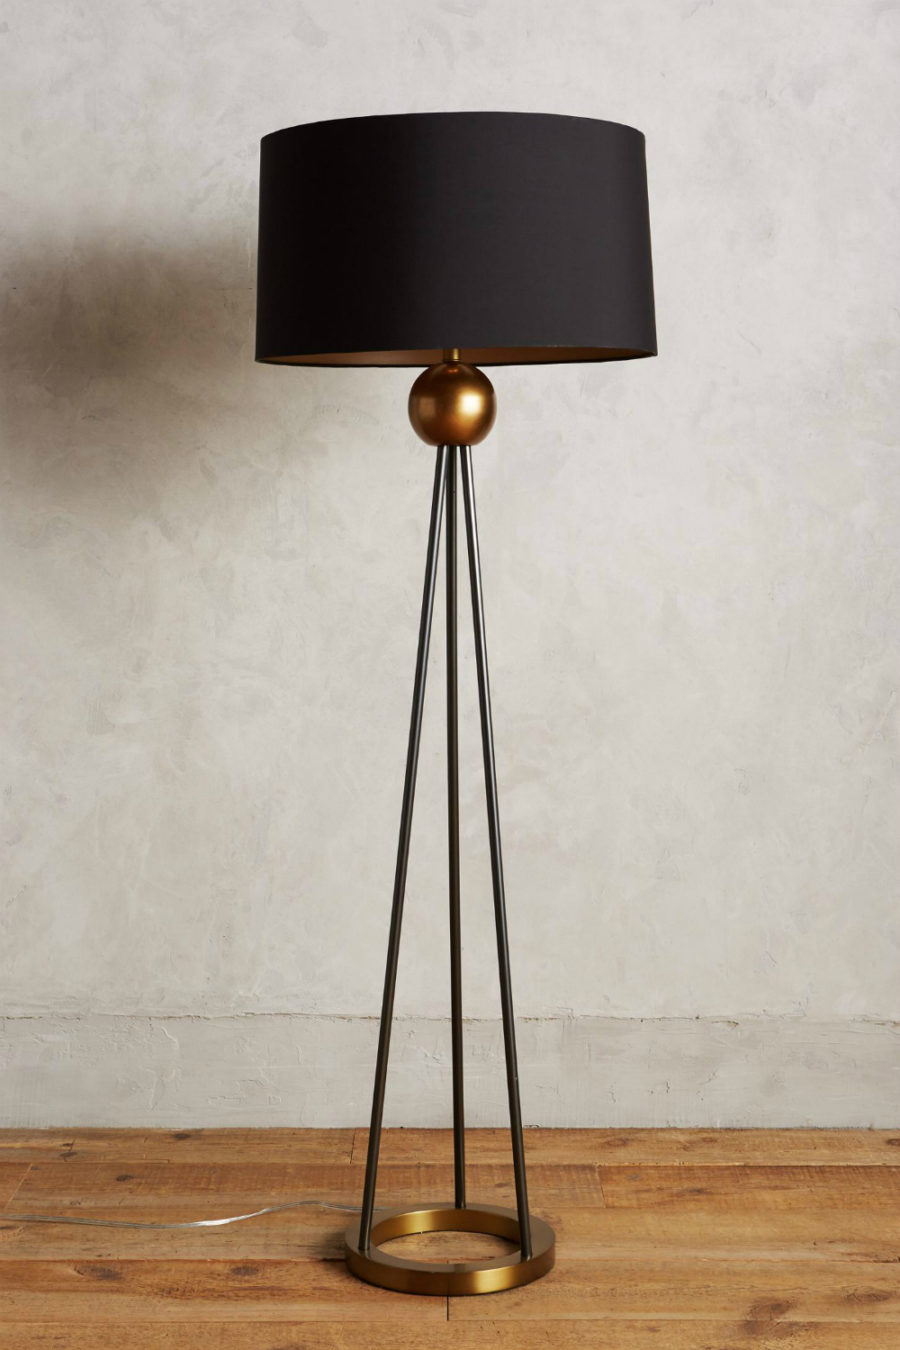 25 absolutely not boring tripod floor lamp designs view in gallery triangulate floor lamp ensemble 900x1350 25 absolutely not boring tripod floor lamp designs solutioingenieria Choice Image